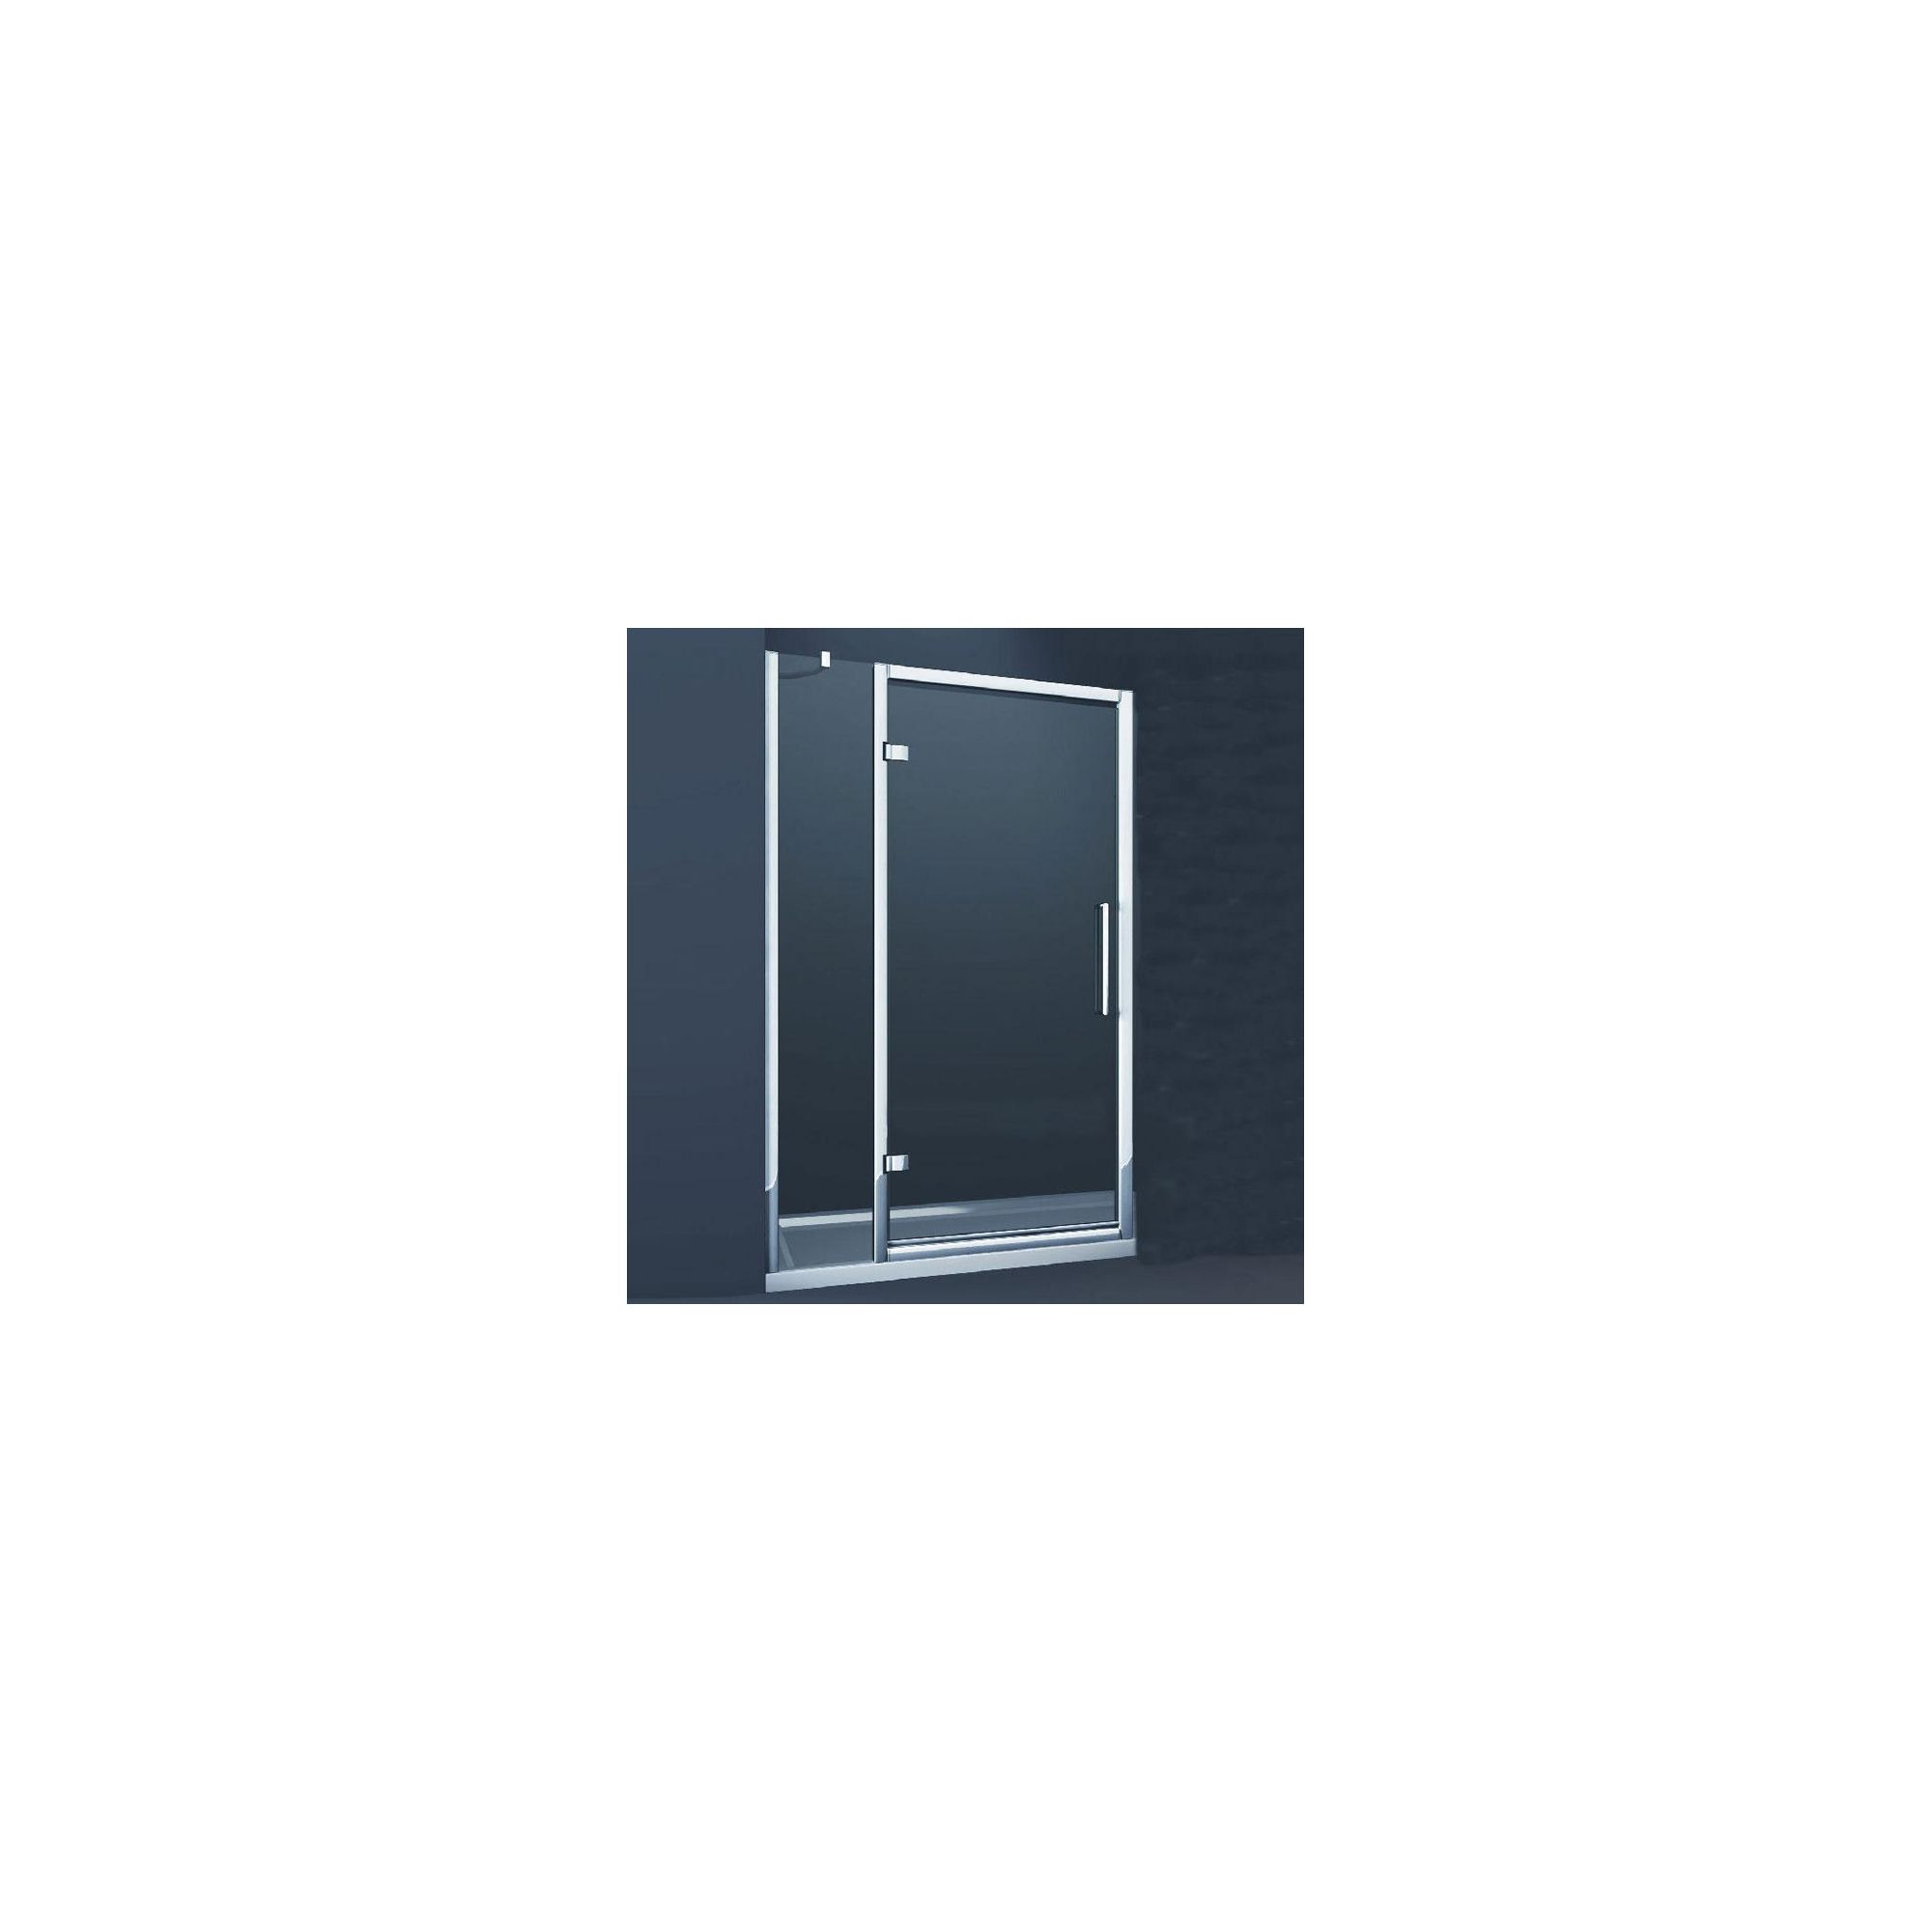 Merlyn Series 8 Inline Hinged Shower Door, 1000mm Wide, Chrome Frame, 8mm Glass at Tesco Direct